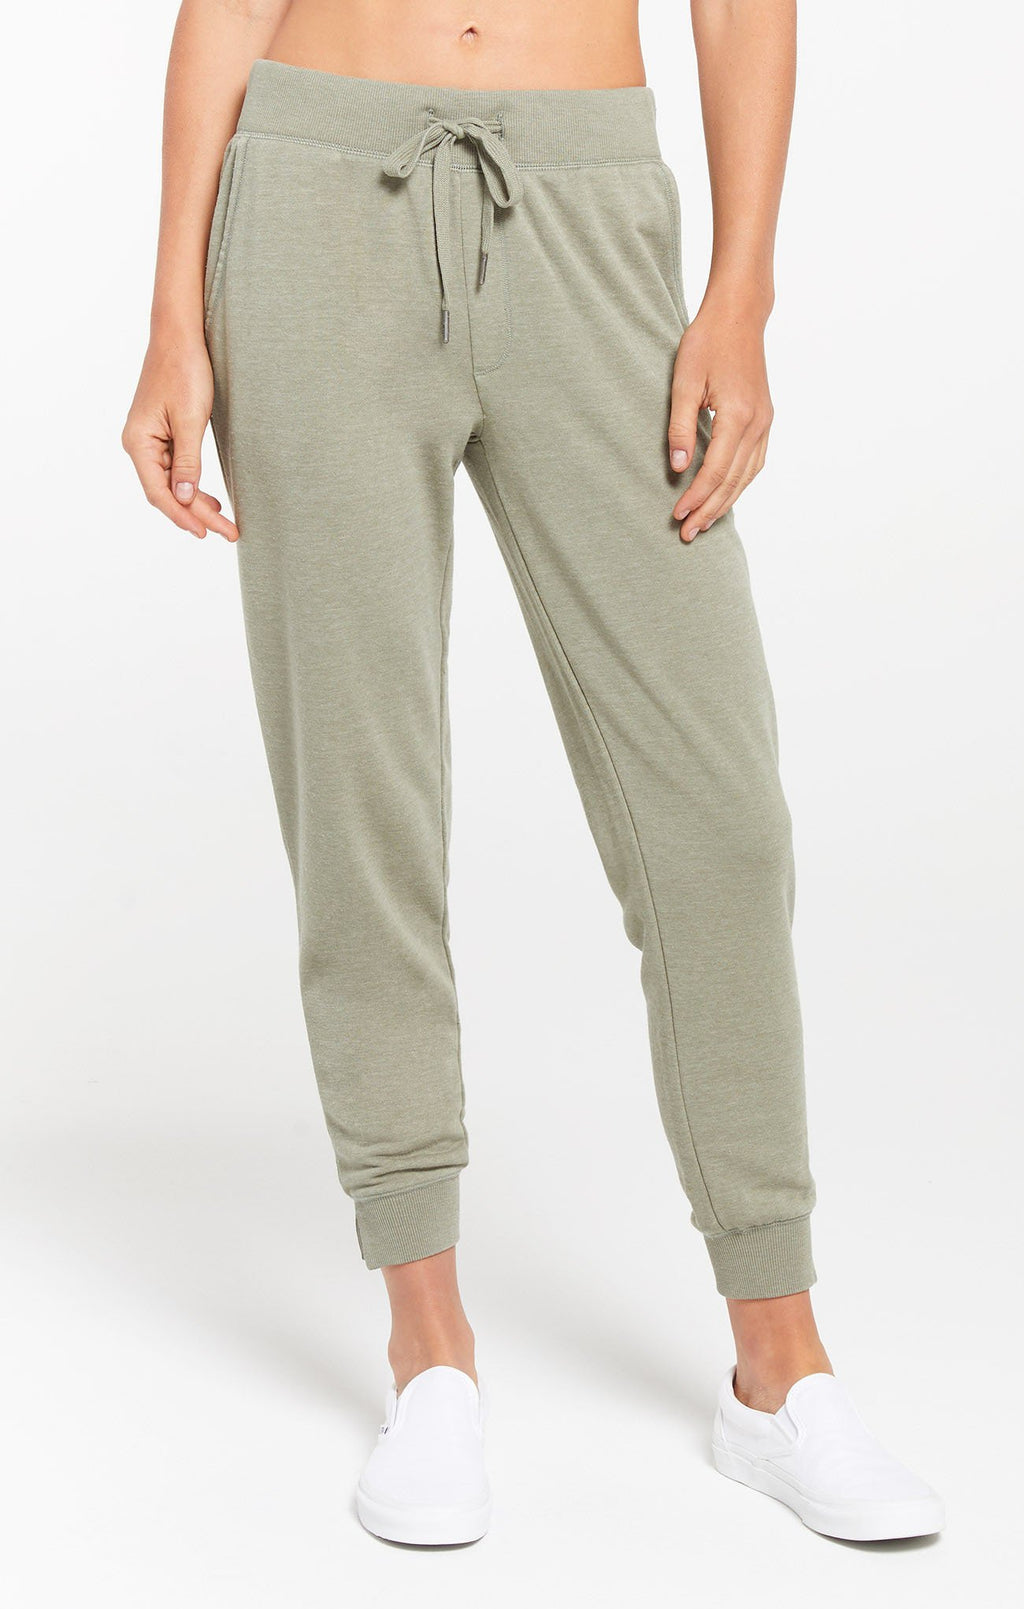 Z Supply Cypress Meadow Green Loop Terry Jogger